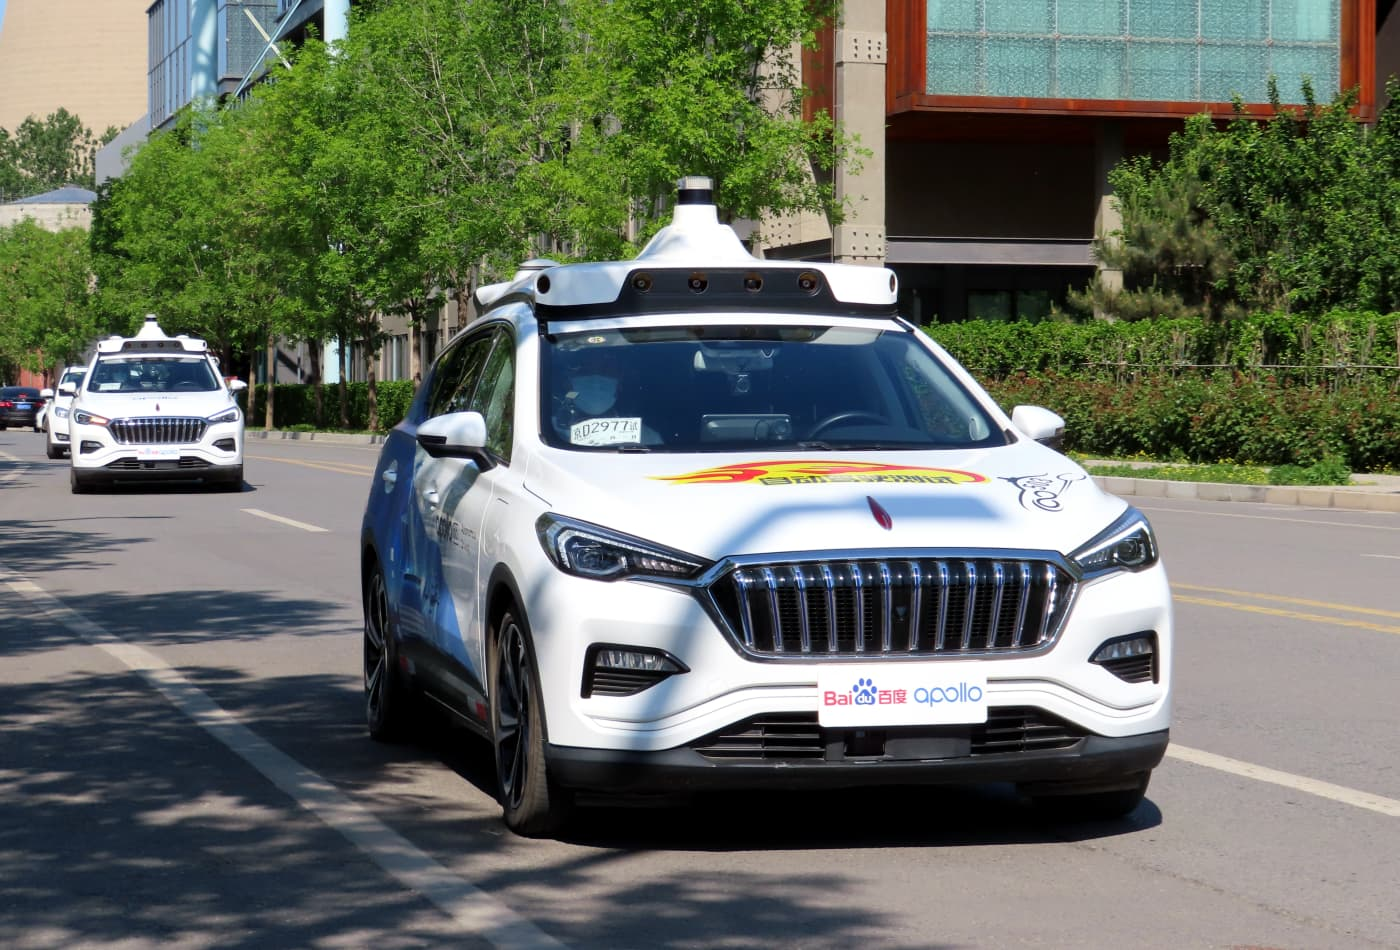 Baidu pushes to put driverless taxis on China's roads, pledging to build 1,000 in 3 years